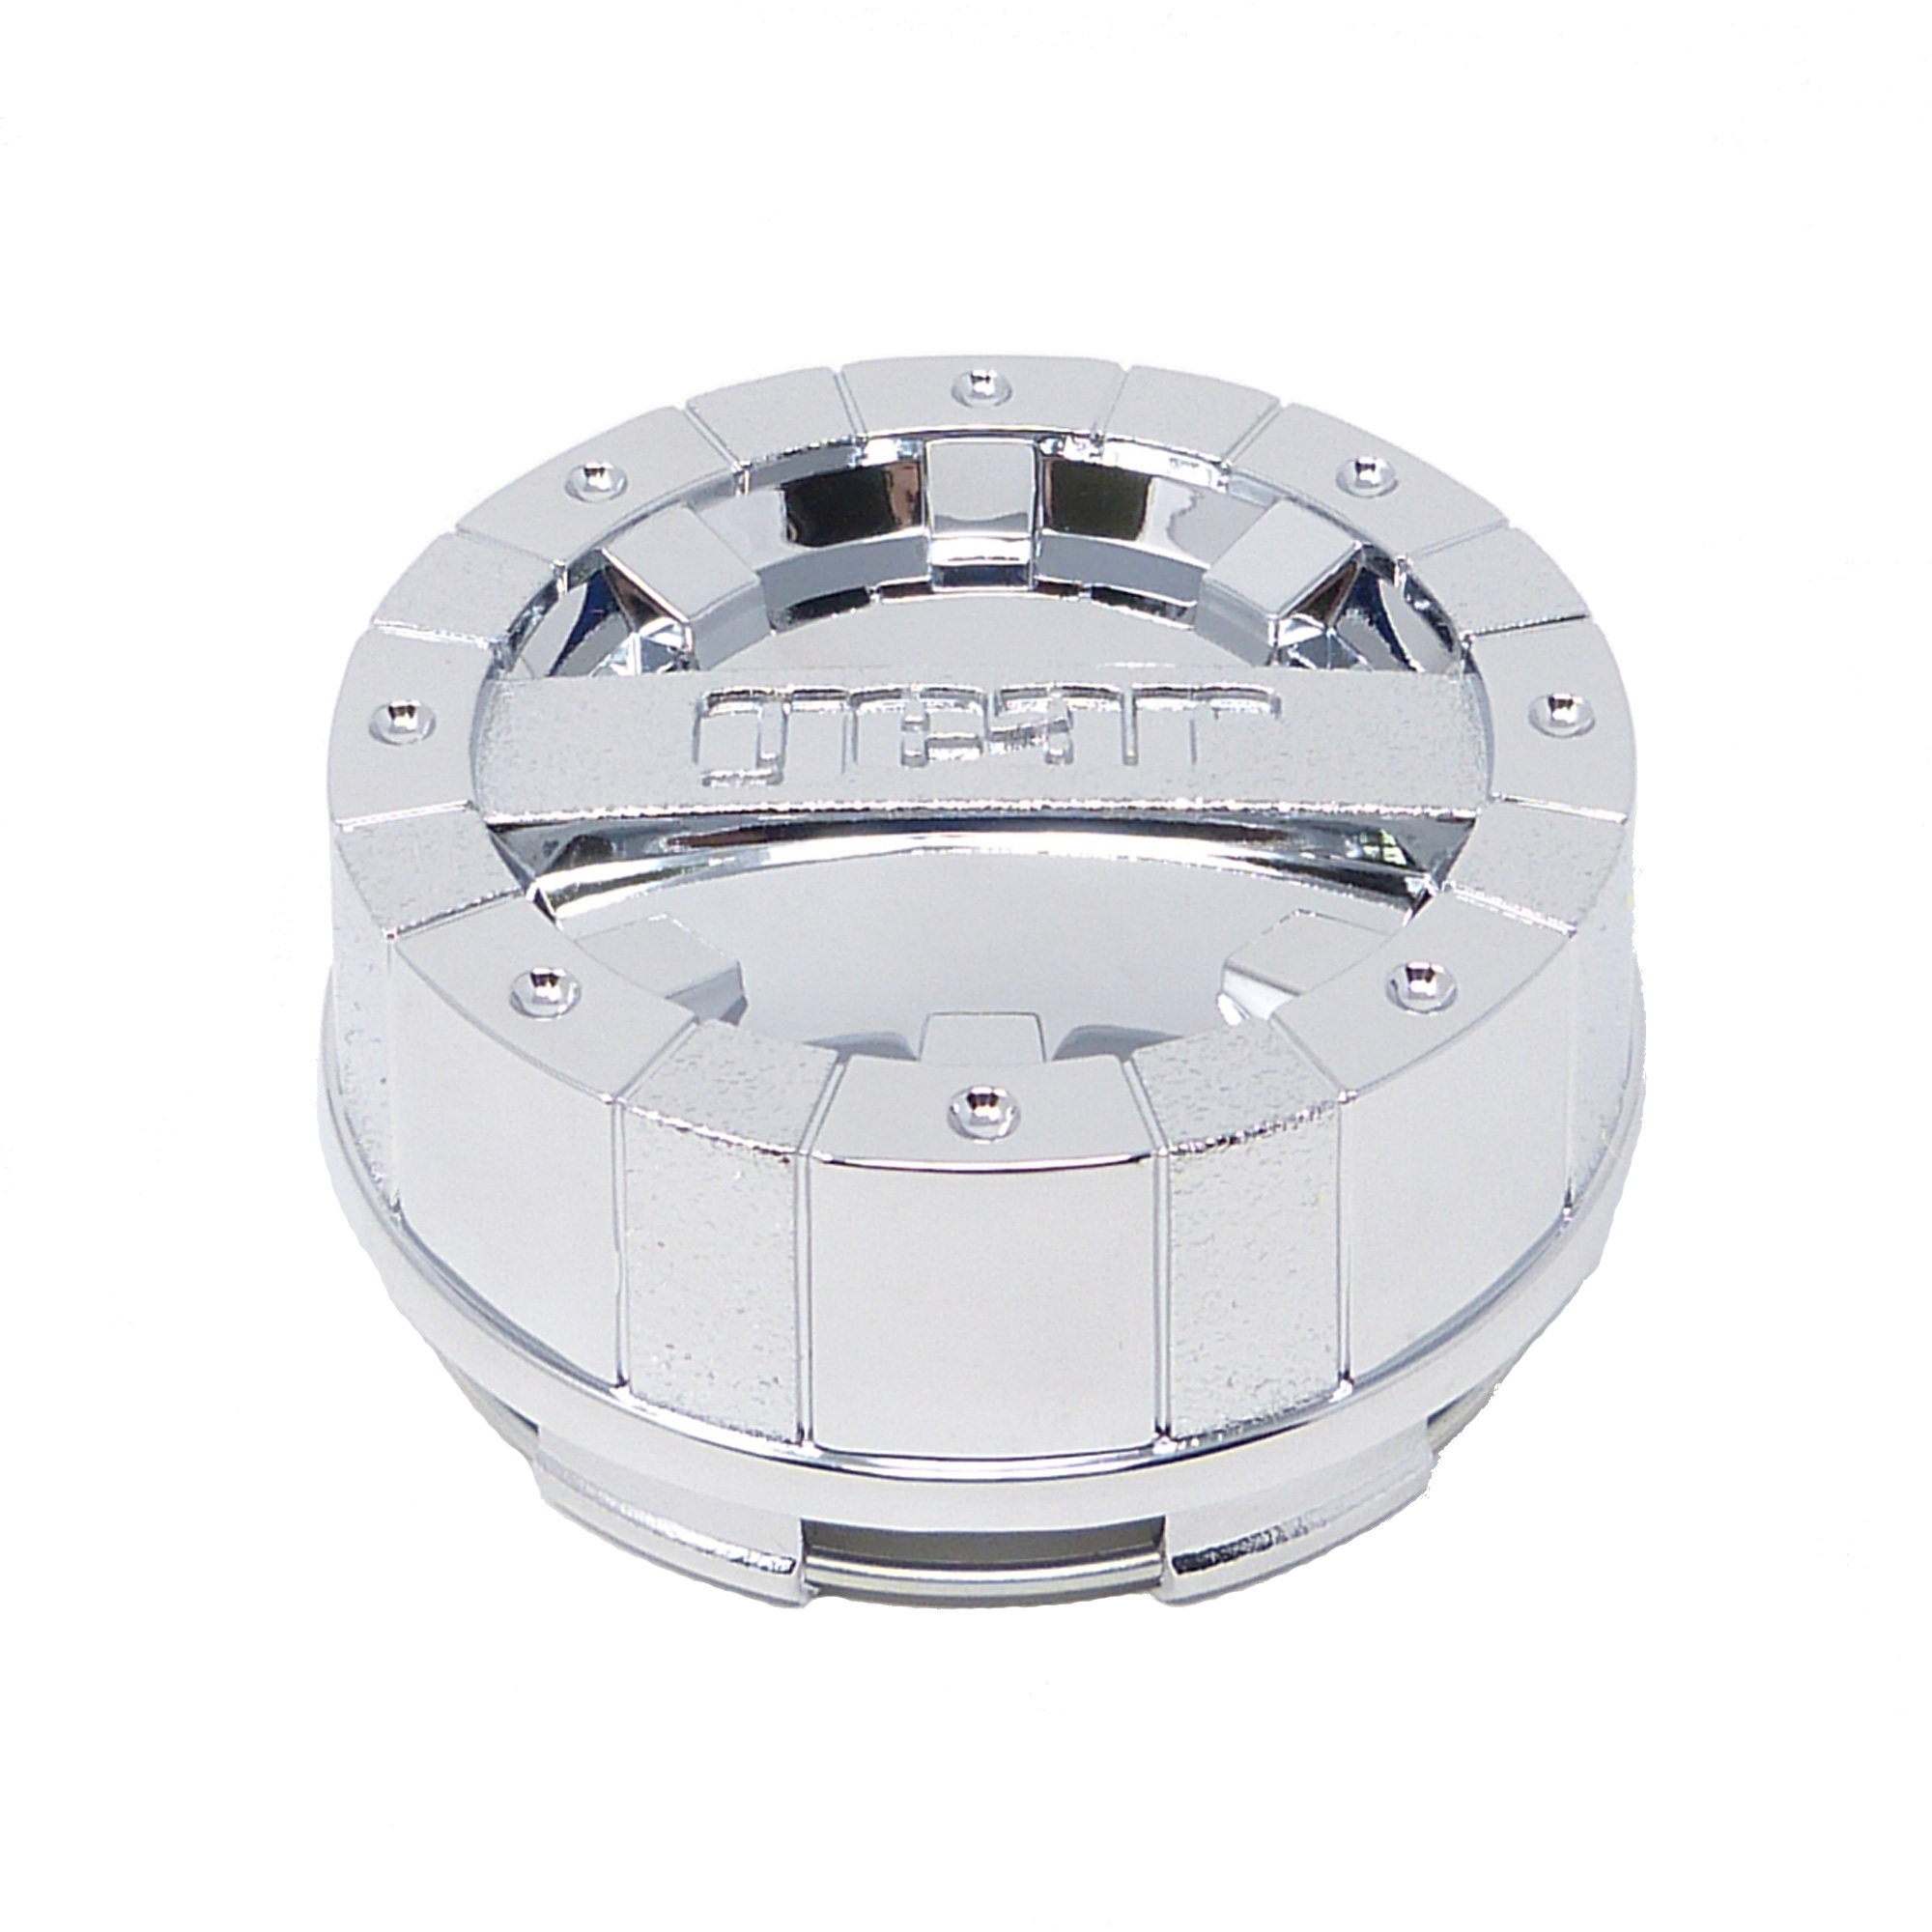 CAP-711C / Gear Alloy Chrome Pop-In Center Cap 1